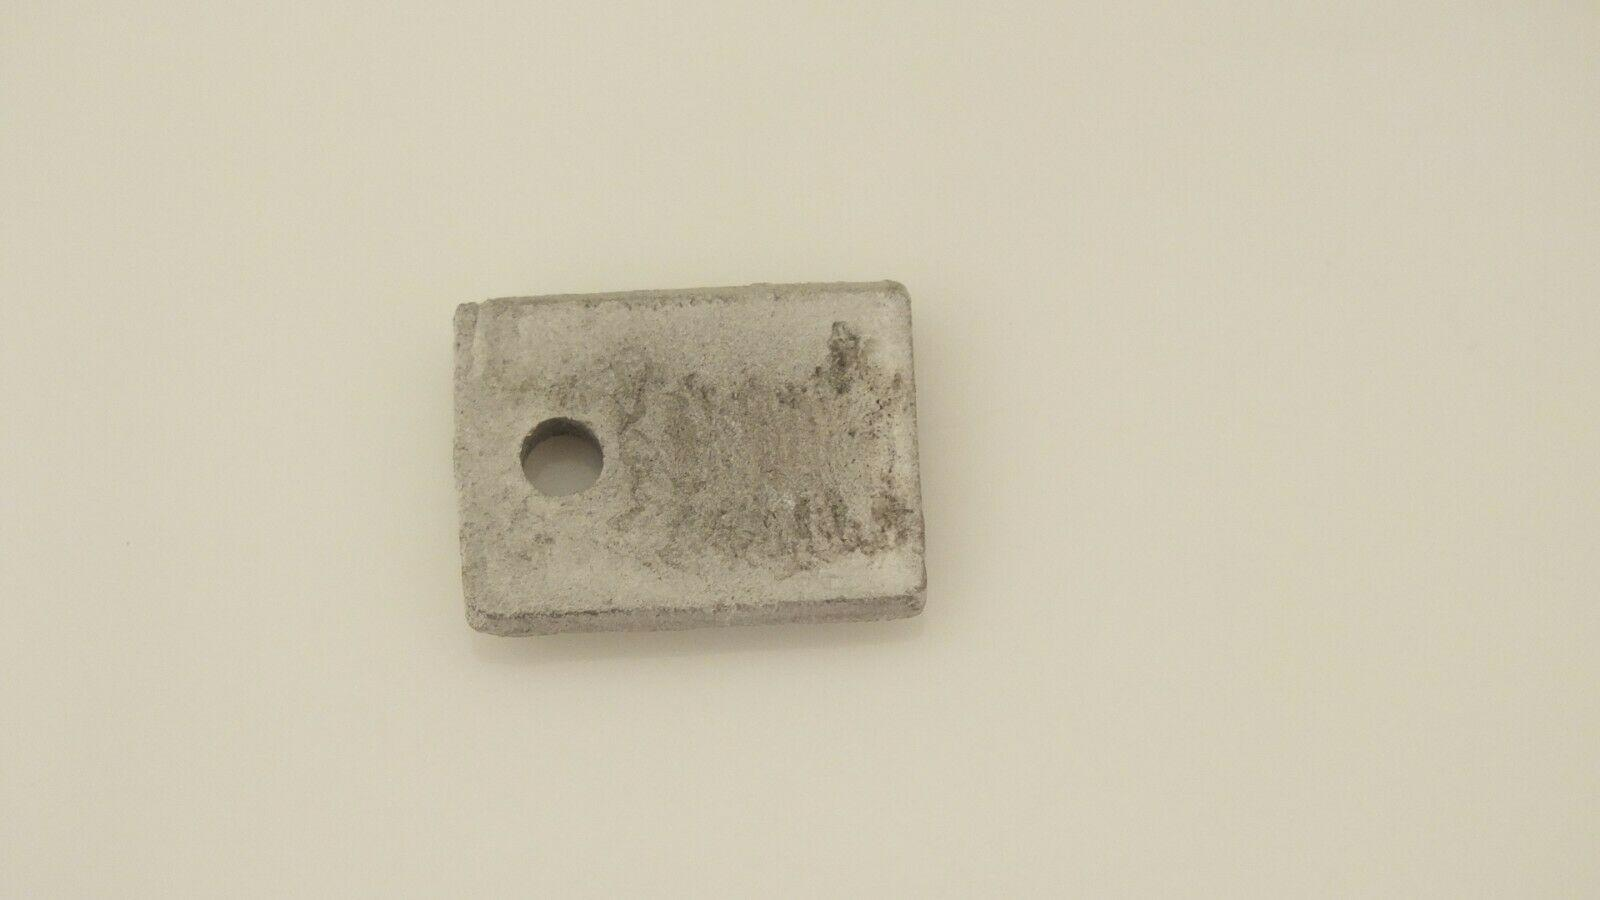 S4210R #   HORNBY TRIANG SYNCRO SMOKE UNIT COVER PLATE   0-6-0 JINTY      U2B